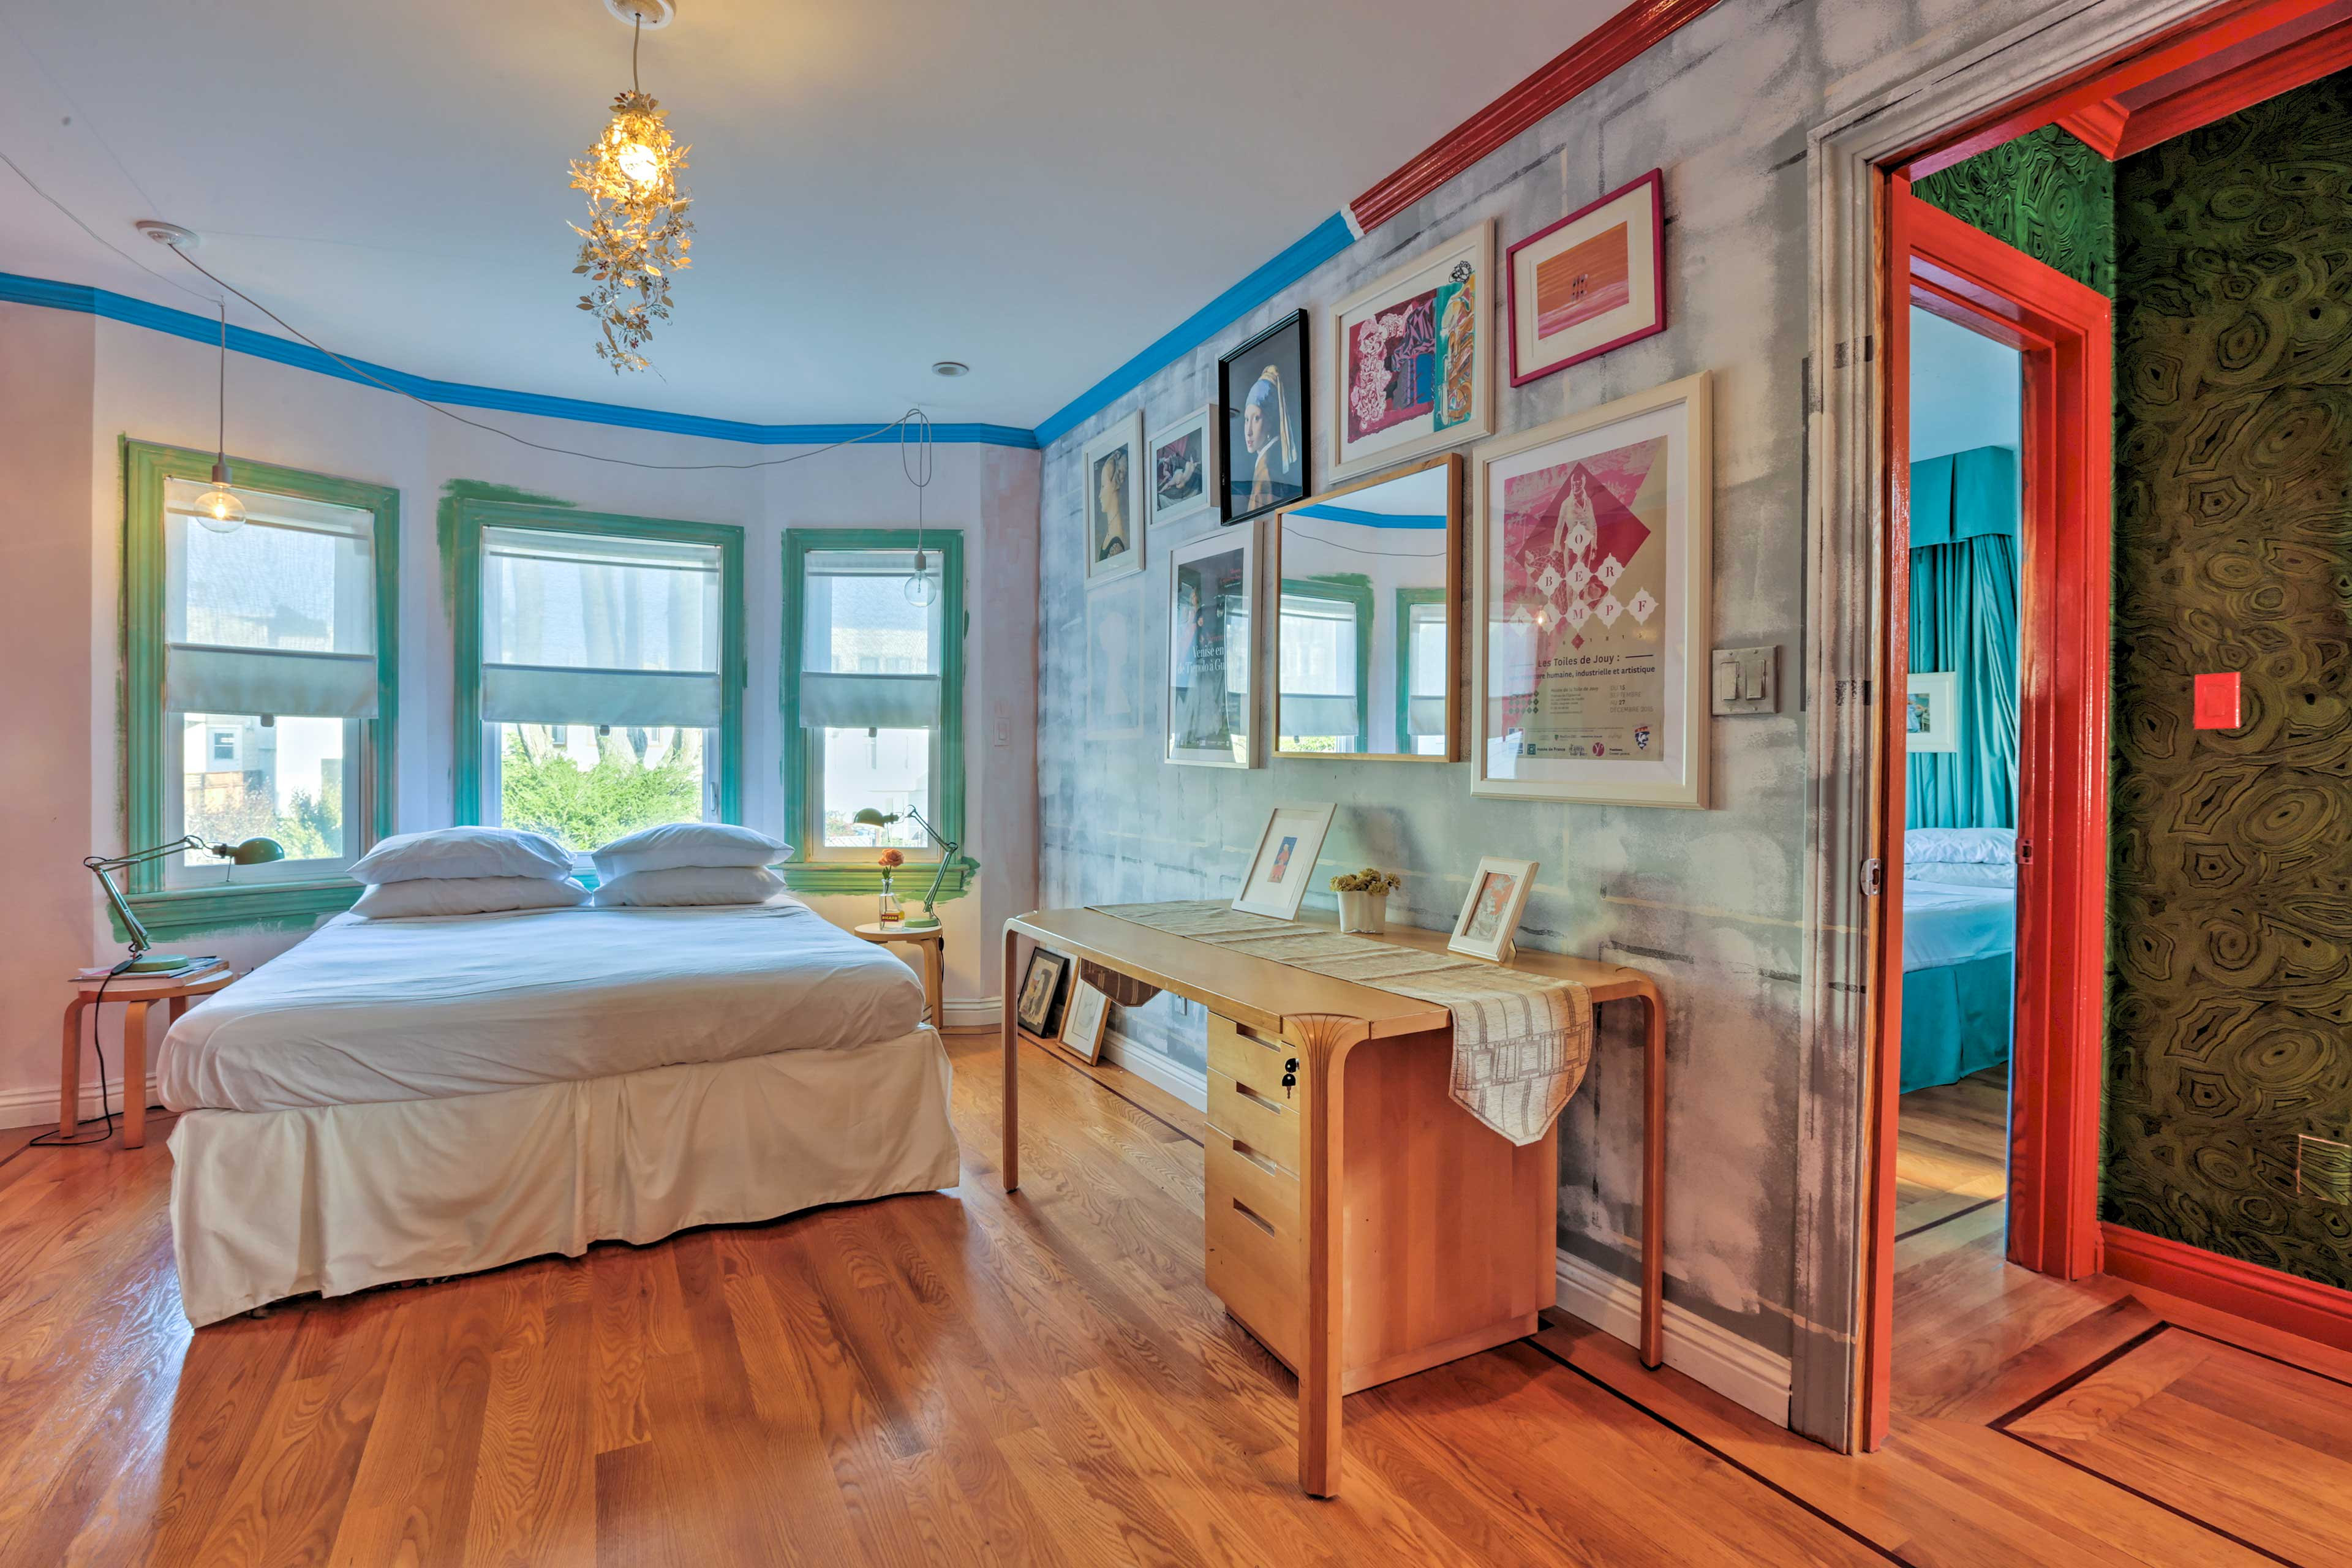 """While """"Reve"""" invites restful slumbers, the windows welcome sun-filled mornings!"""